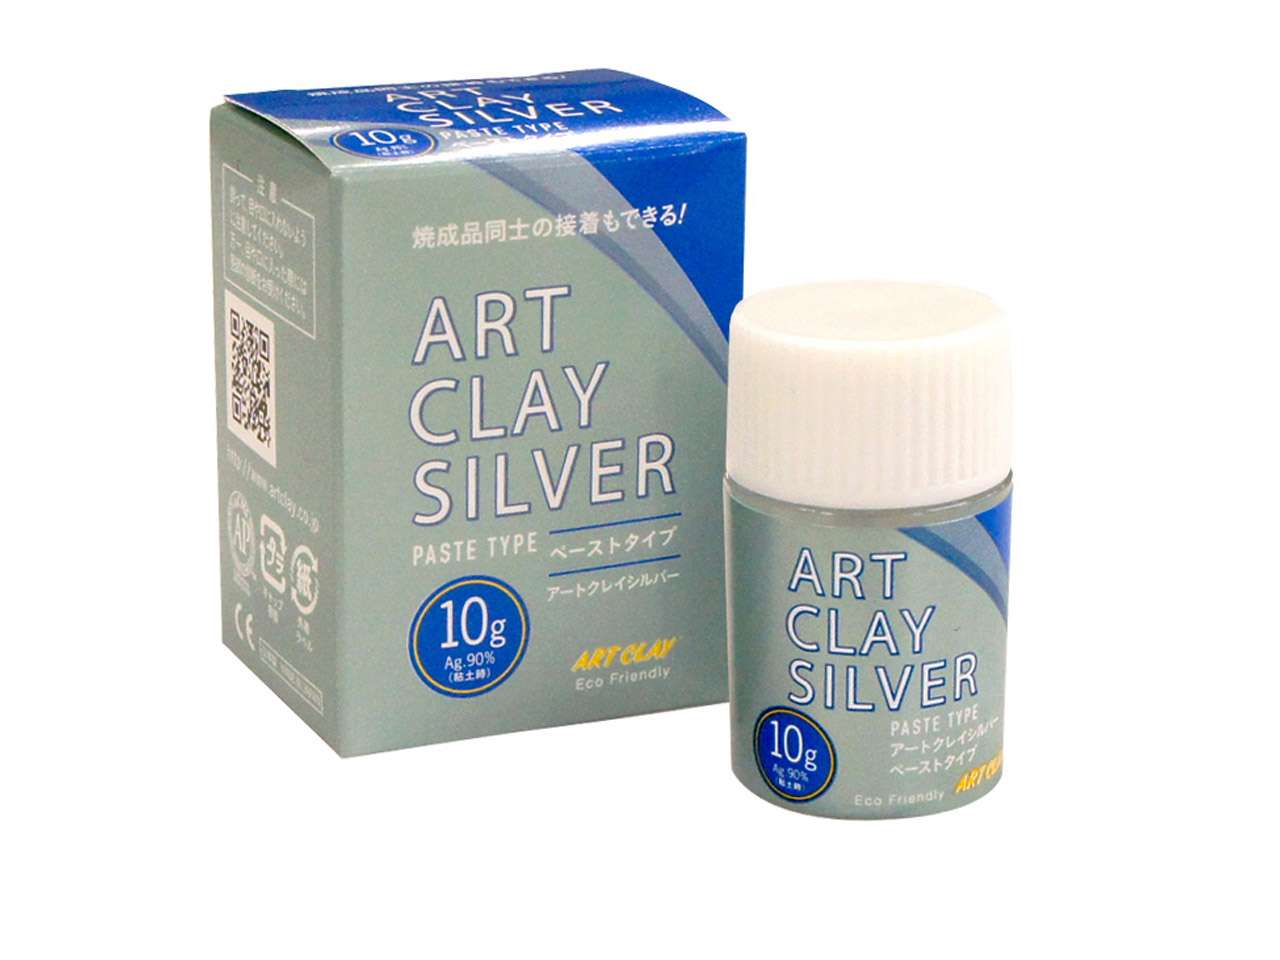 Art Clay Silver 10g Paste